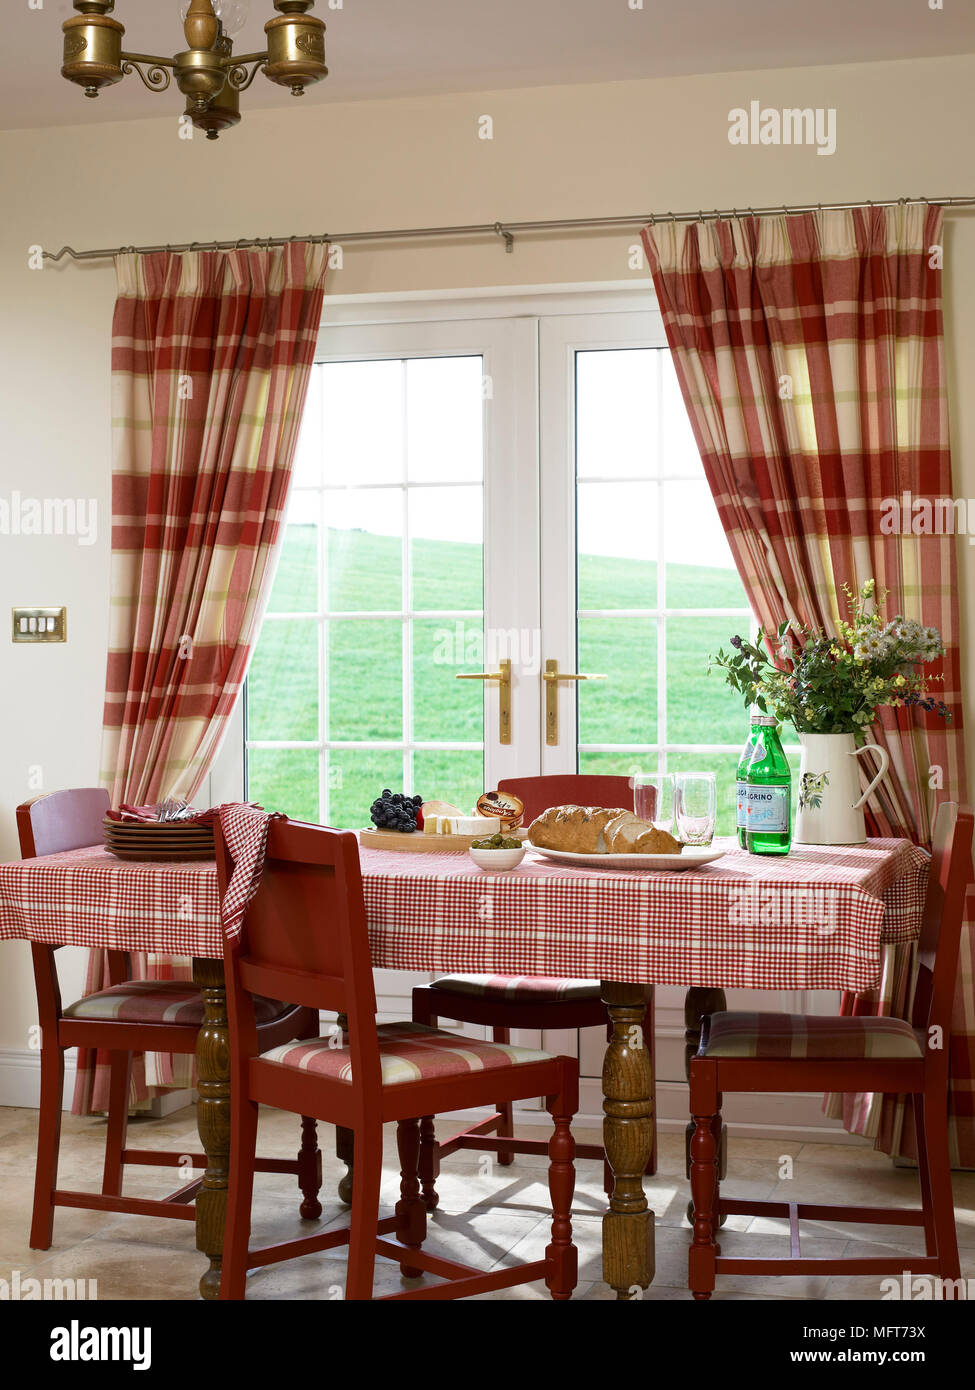 A Traditional Country Dining Room Wooden Table And Chairs Check Curtains At French Windows Stock Photo Alamy